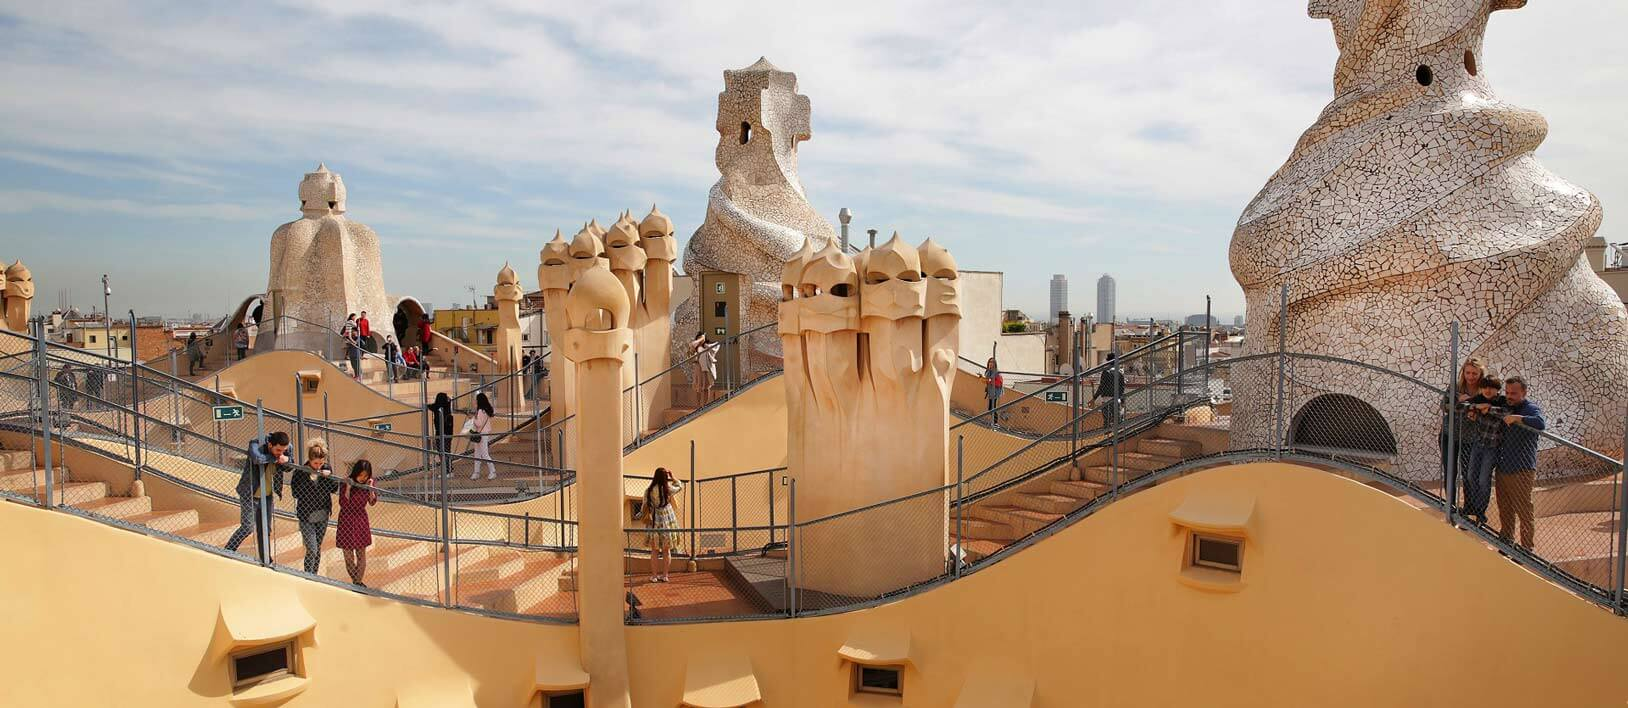 Casa Mila official website  La Pedrera Gaudi Barcelona